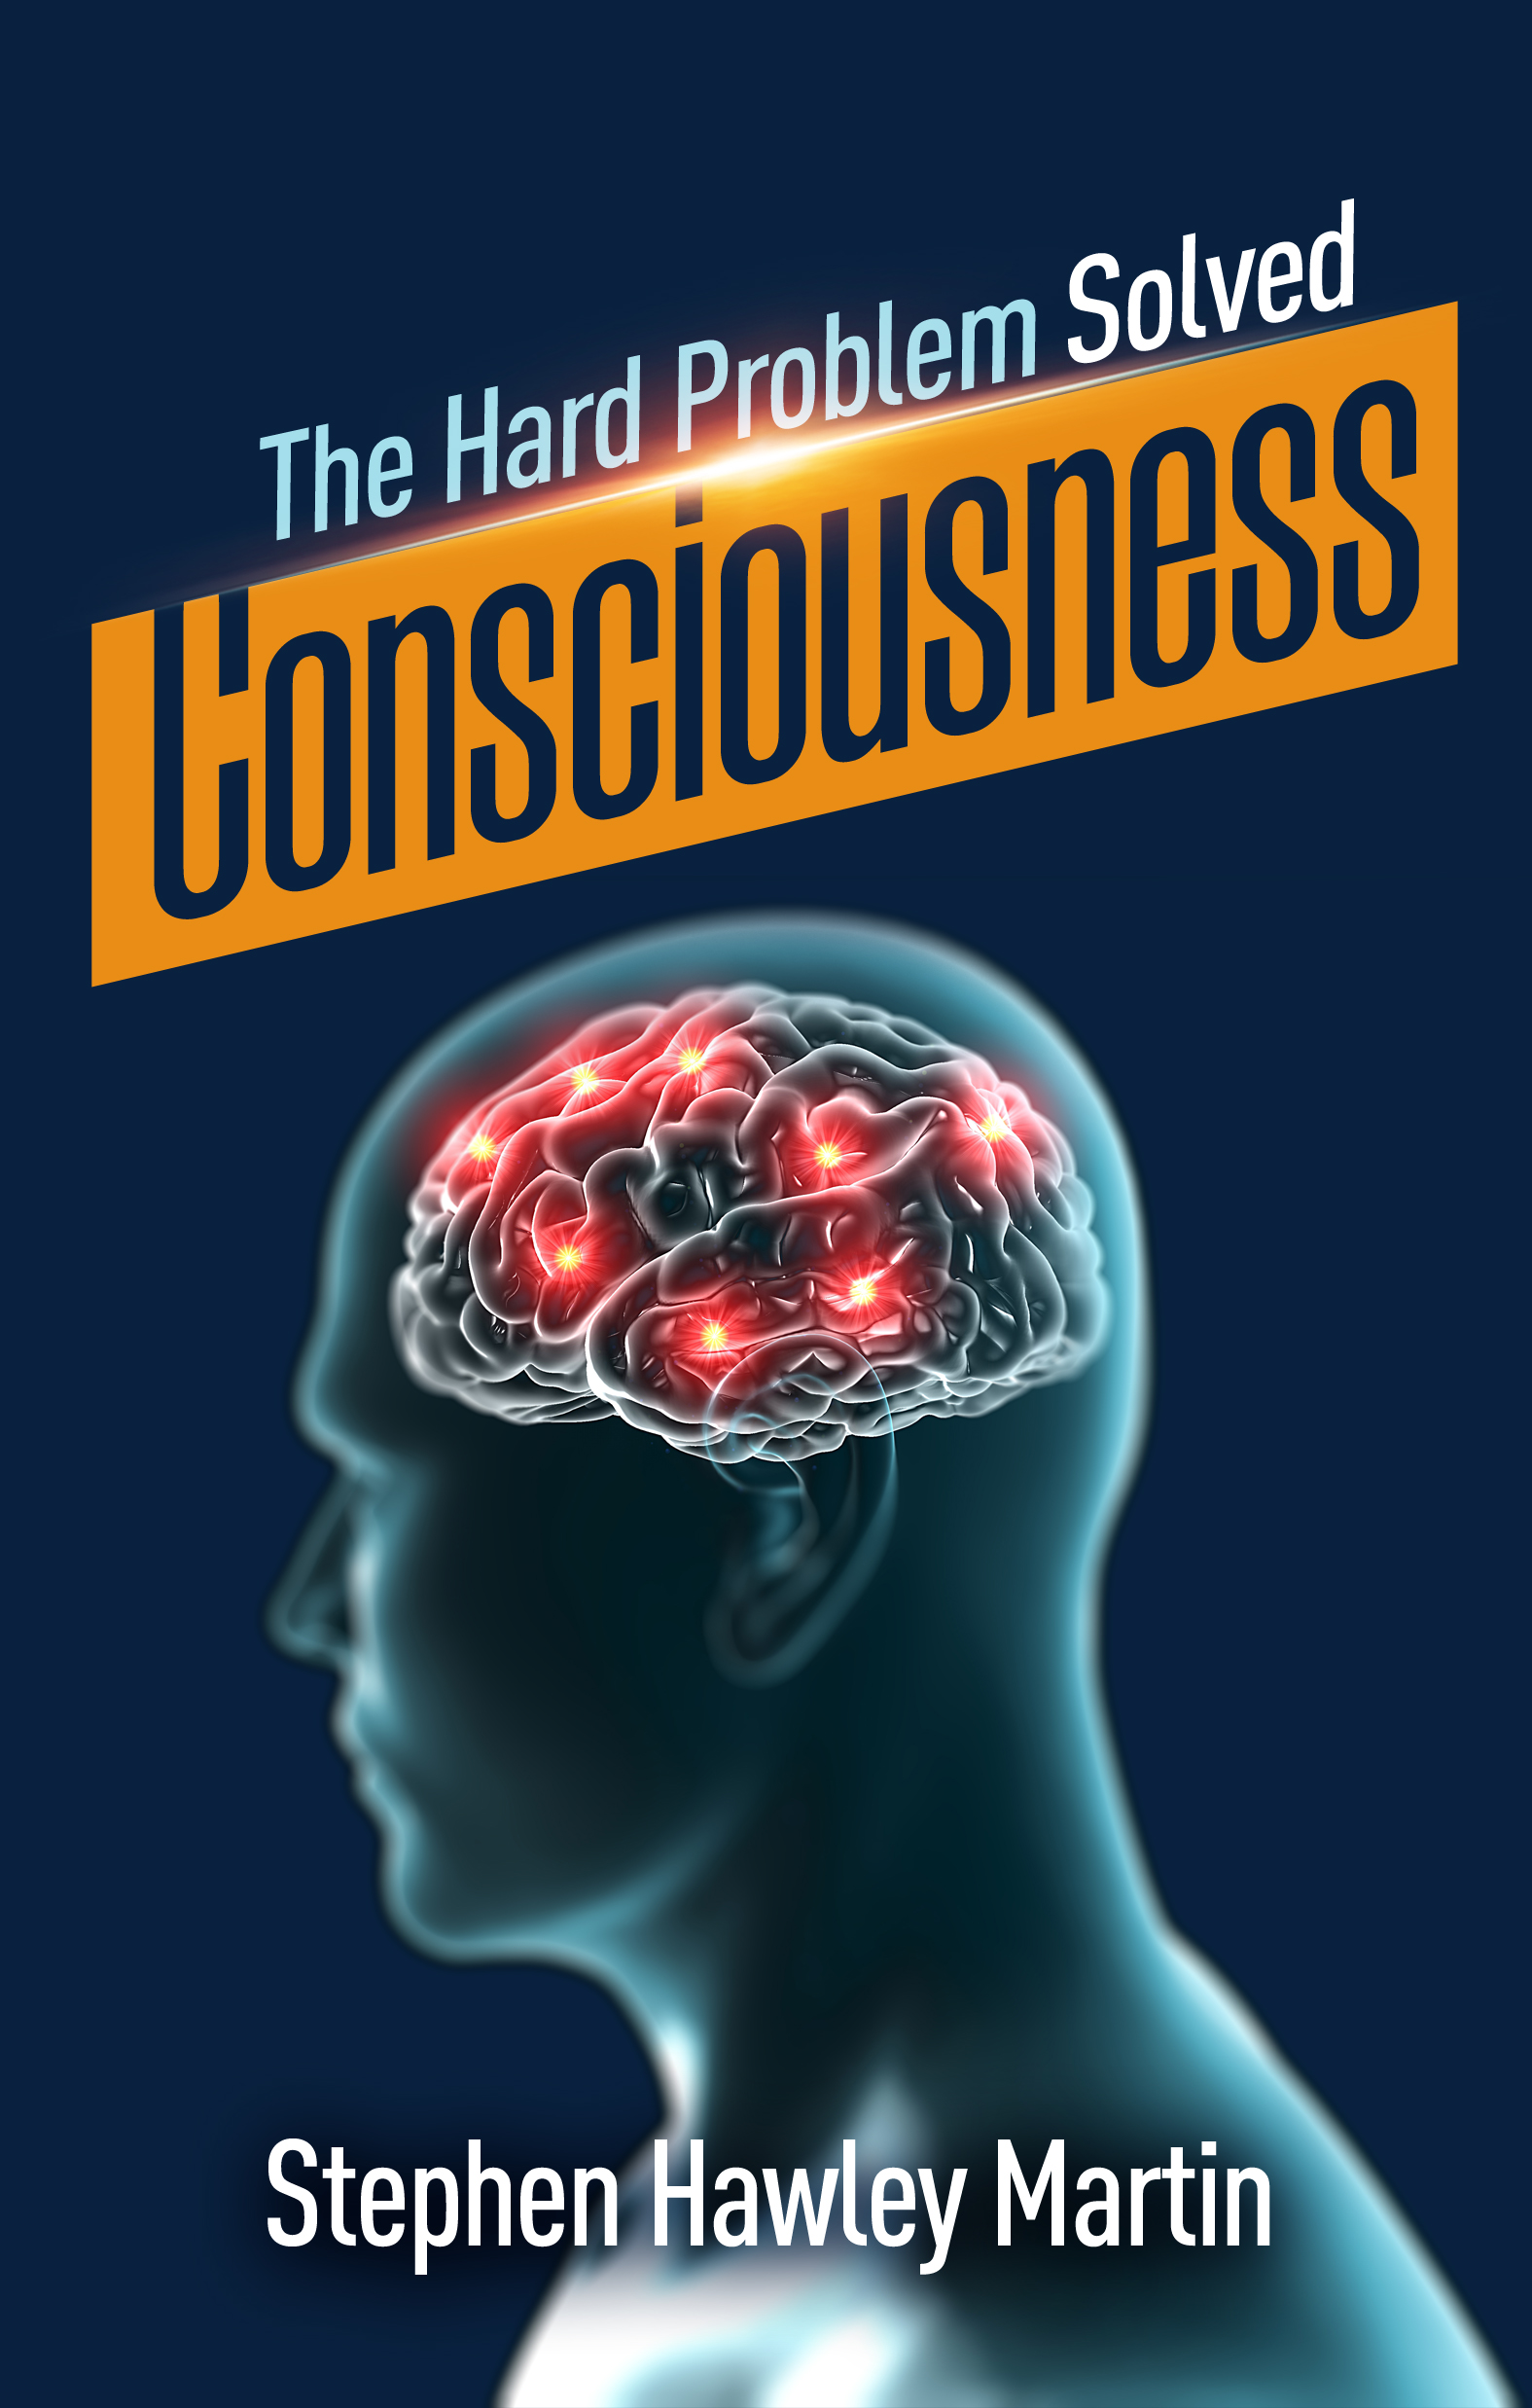 How Does the Brain Create Consciousness? Or Does It? Research Revealed in a New Book Points to an Answer That is Difficult to Refute